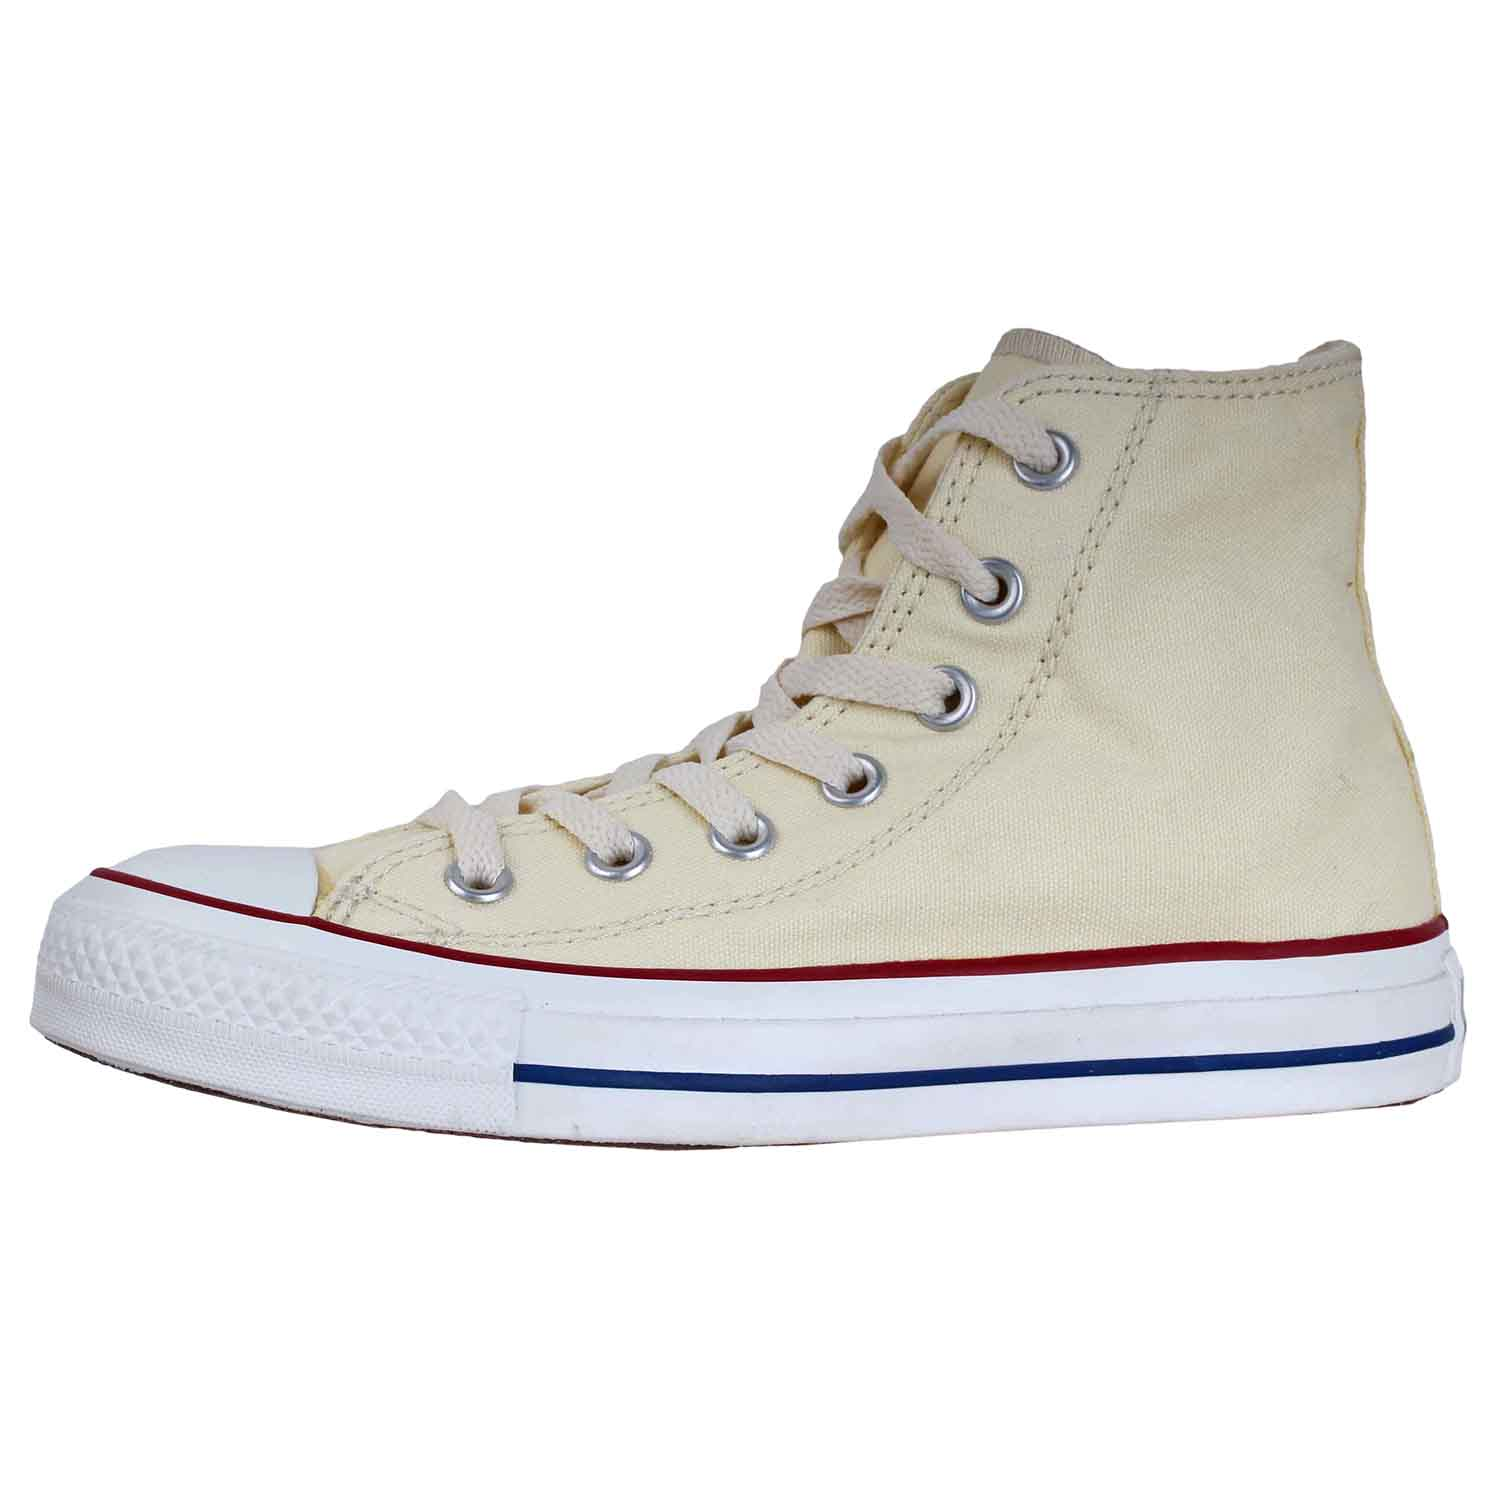 Details about Converse Mens Chuck Taylor All Star High Top Shoes M9162 3.5M5.5W